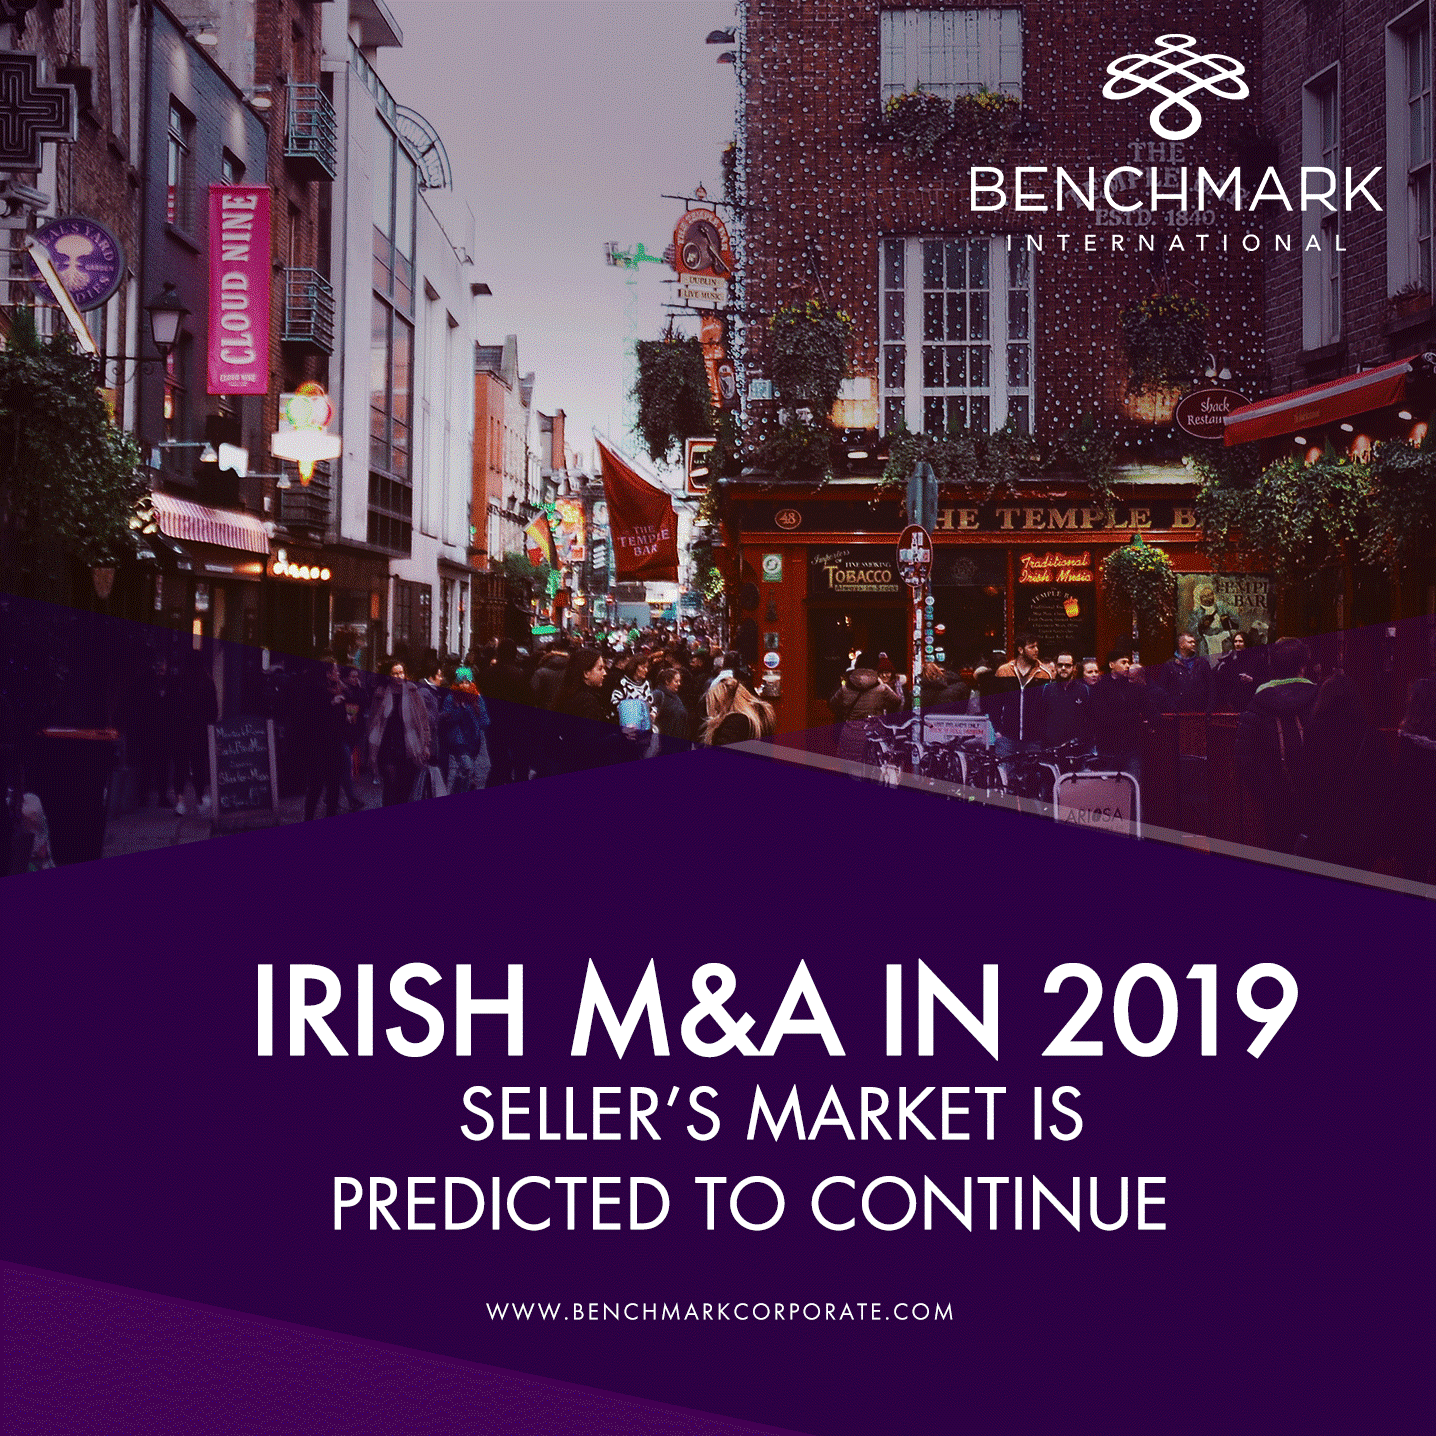 Irish M&A in 2019 Portrait